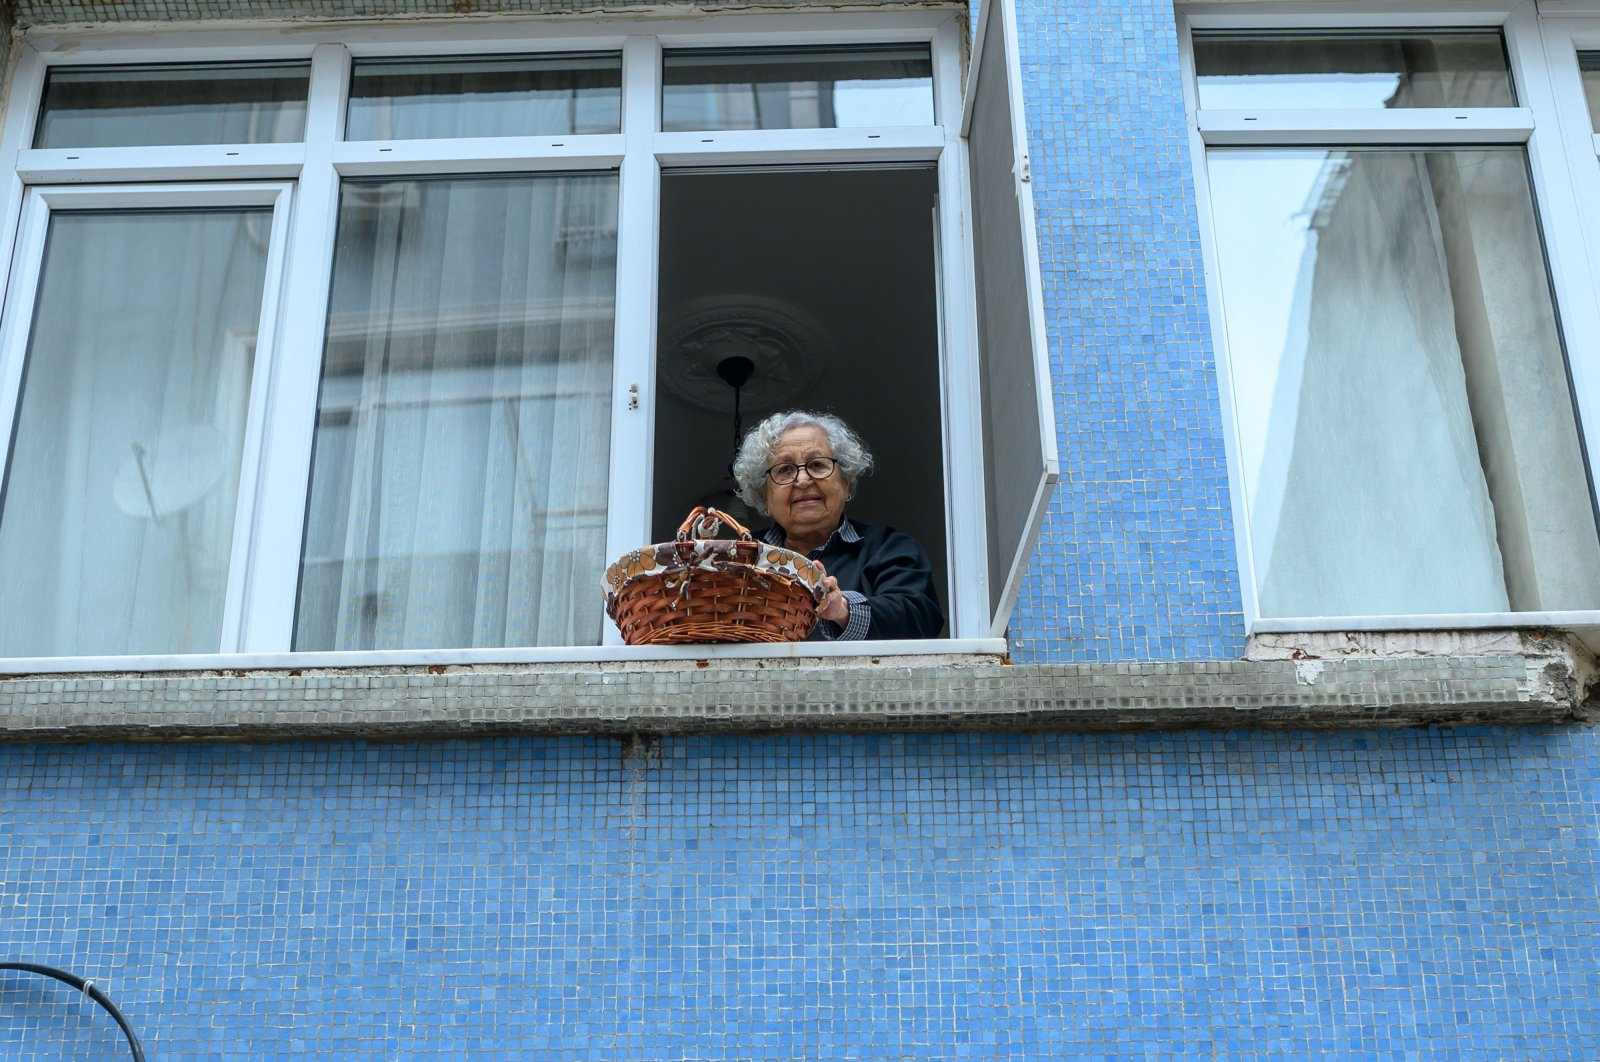 Lütfiye Yeşilbaş, an 89-year-old Turkish woman who lives alone in her home, lowers her basket in Kadıköy, Istanbul, Monday, March 23, 2020. (AFP Photo)